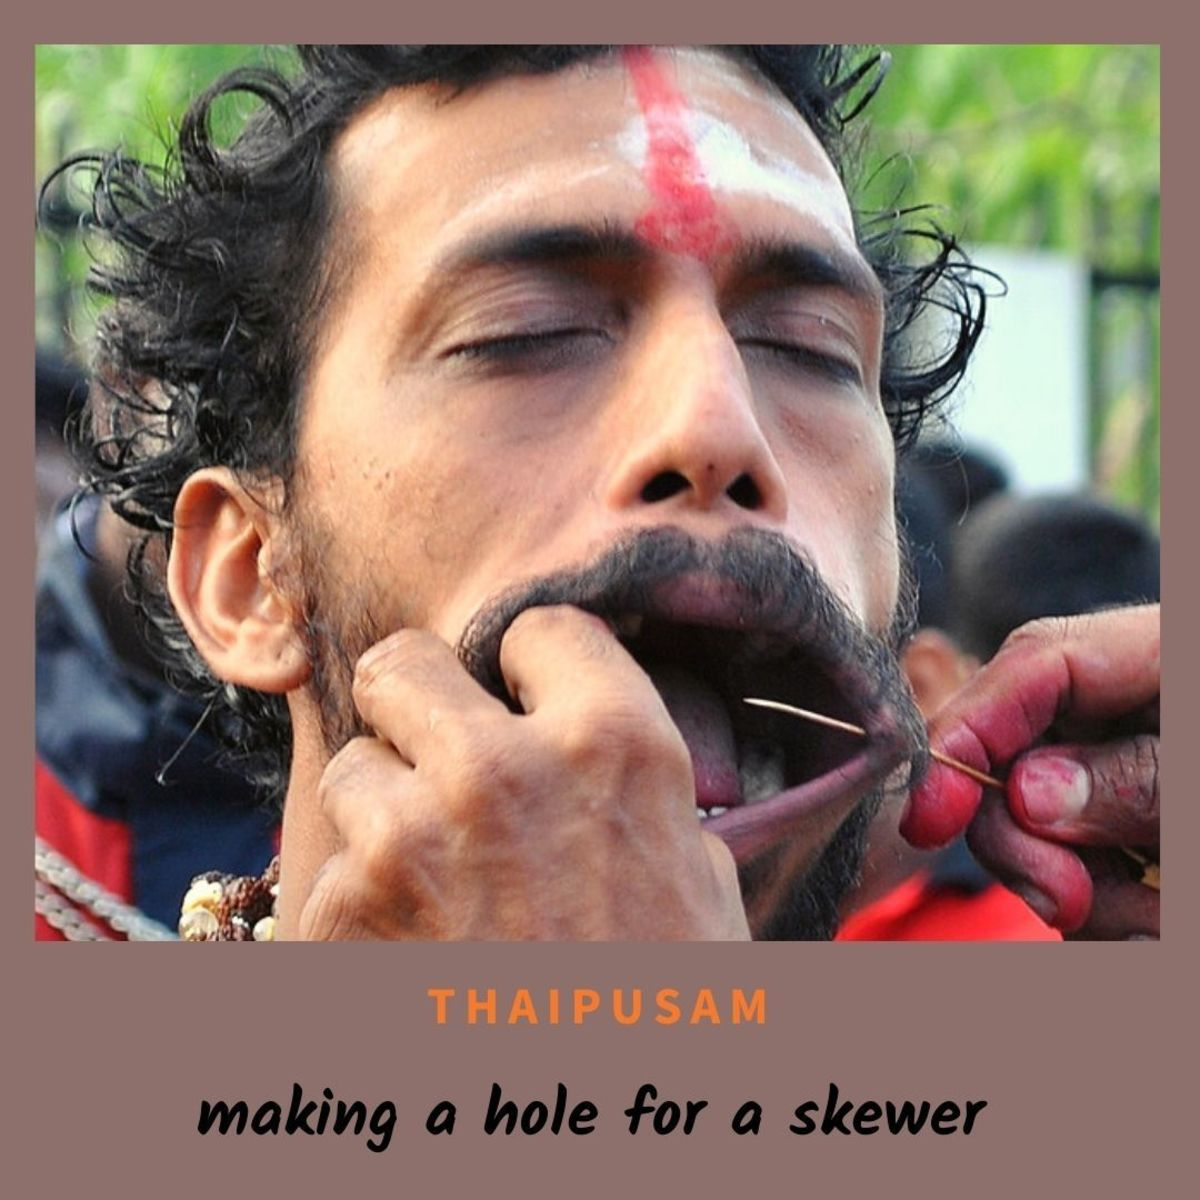 A hole was made on this devotee's cheek to allow for a spike to easily pierce through his cheeks.